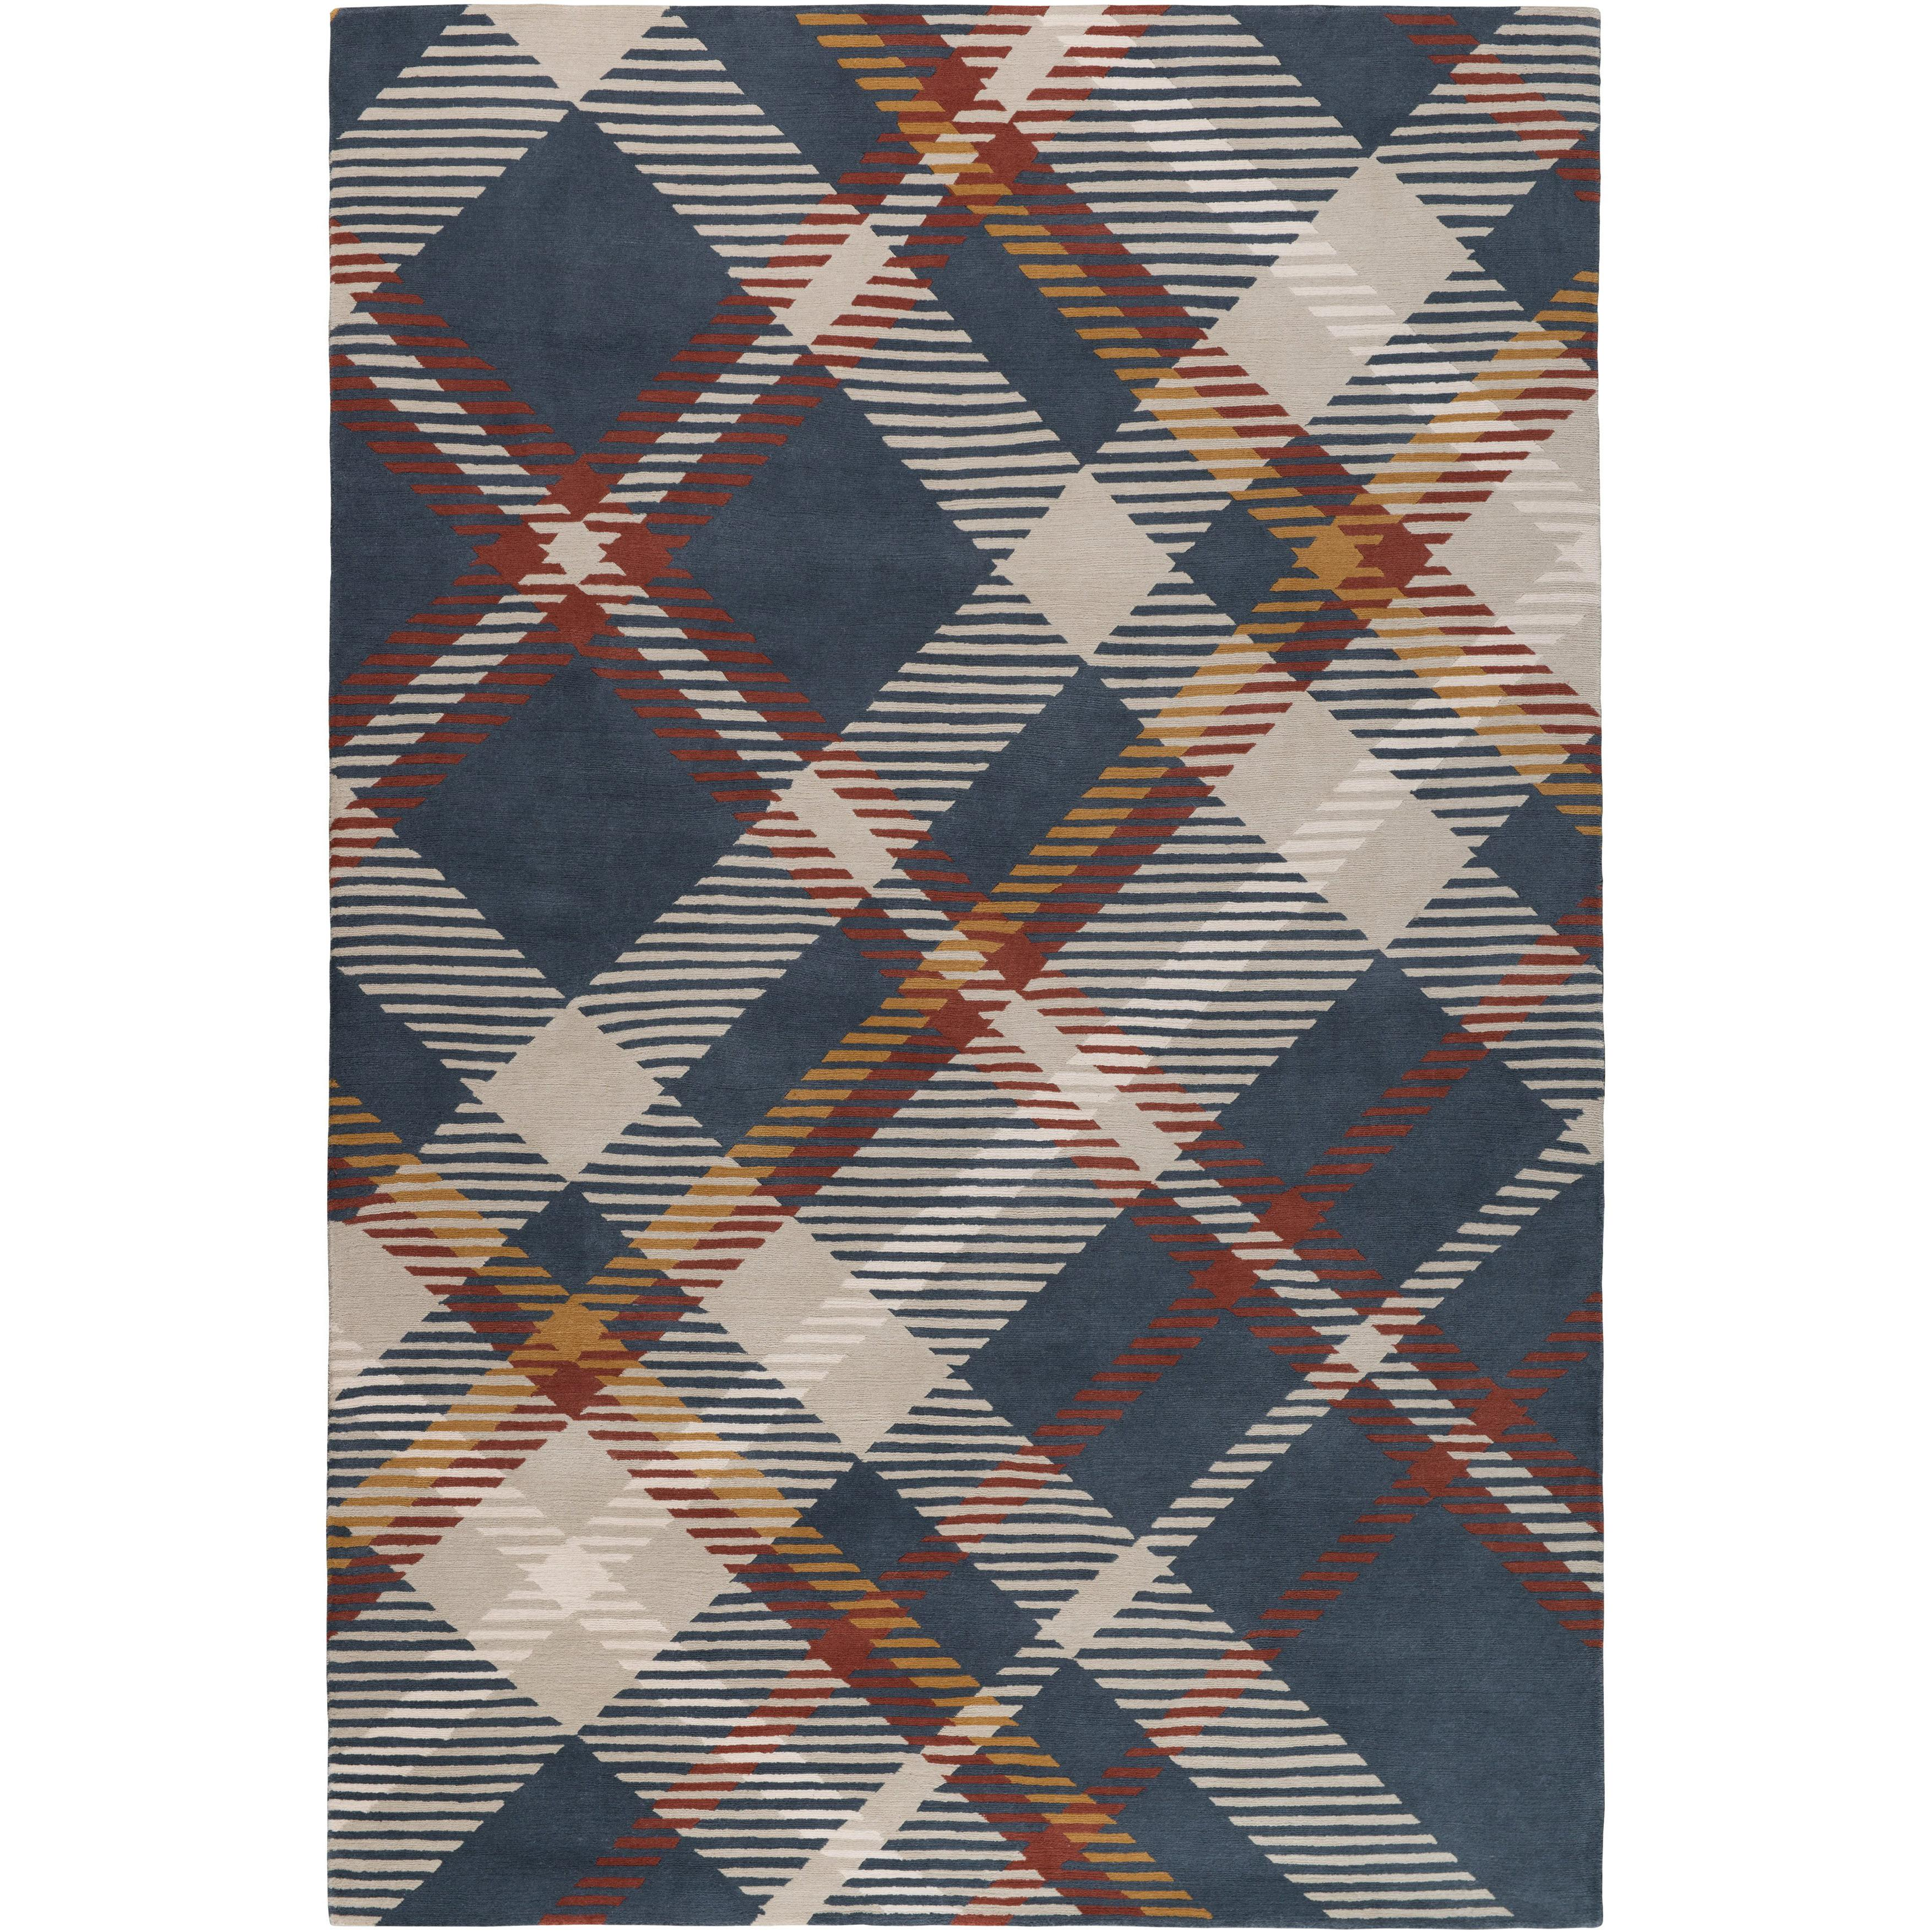 Highland Hand Knotted 6x4 Floor Rug In Wool By Vivienne Westwood